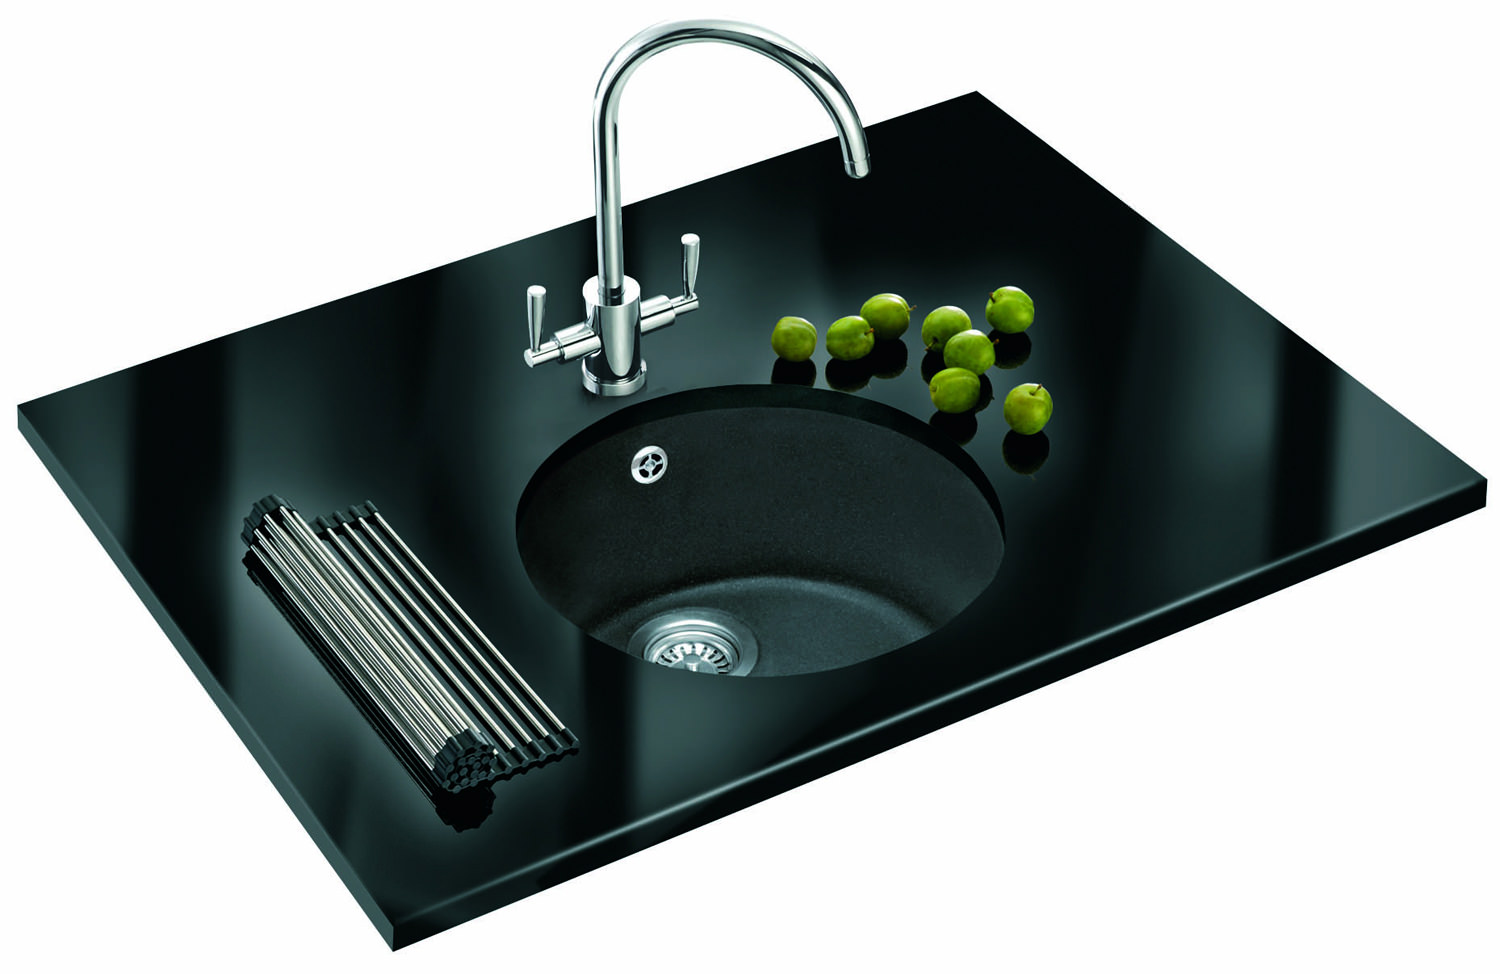 Franke Graphite Sink : ... of Franke Rotondo Fragranite Graphite 1.0 Bowl Undermount Kitchen Sink